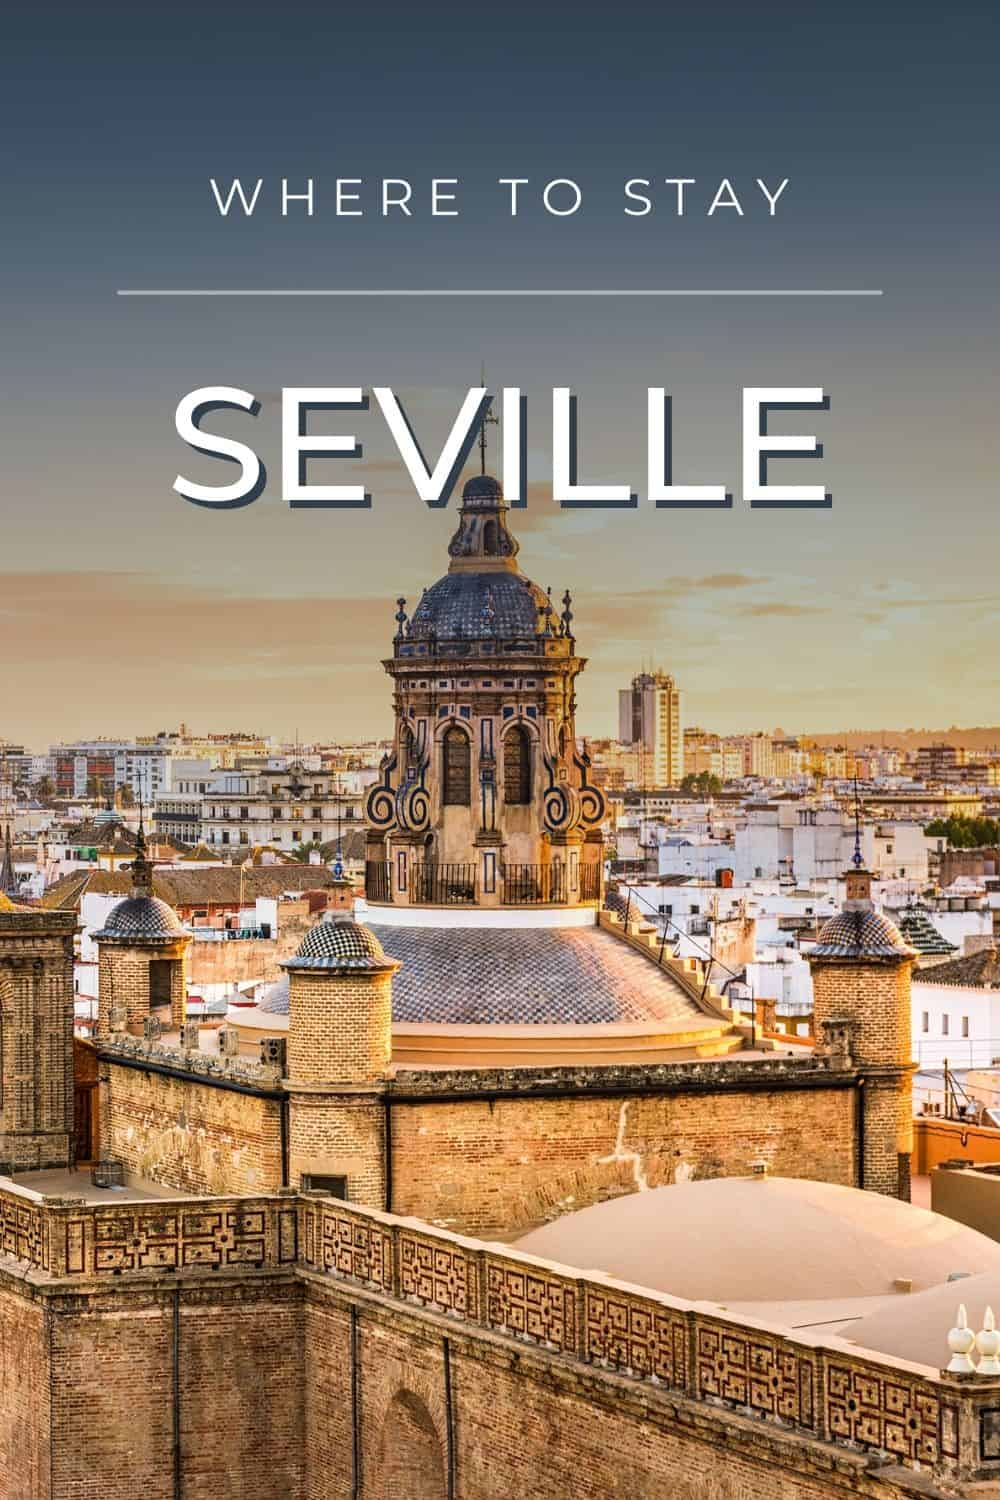 Where to Stay in Seville, Spain